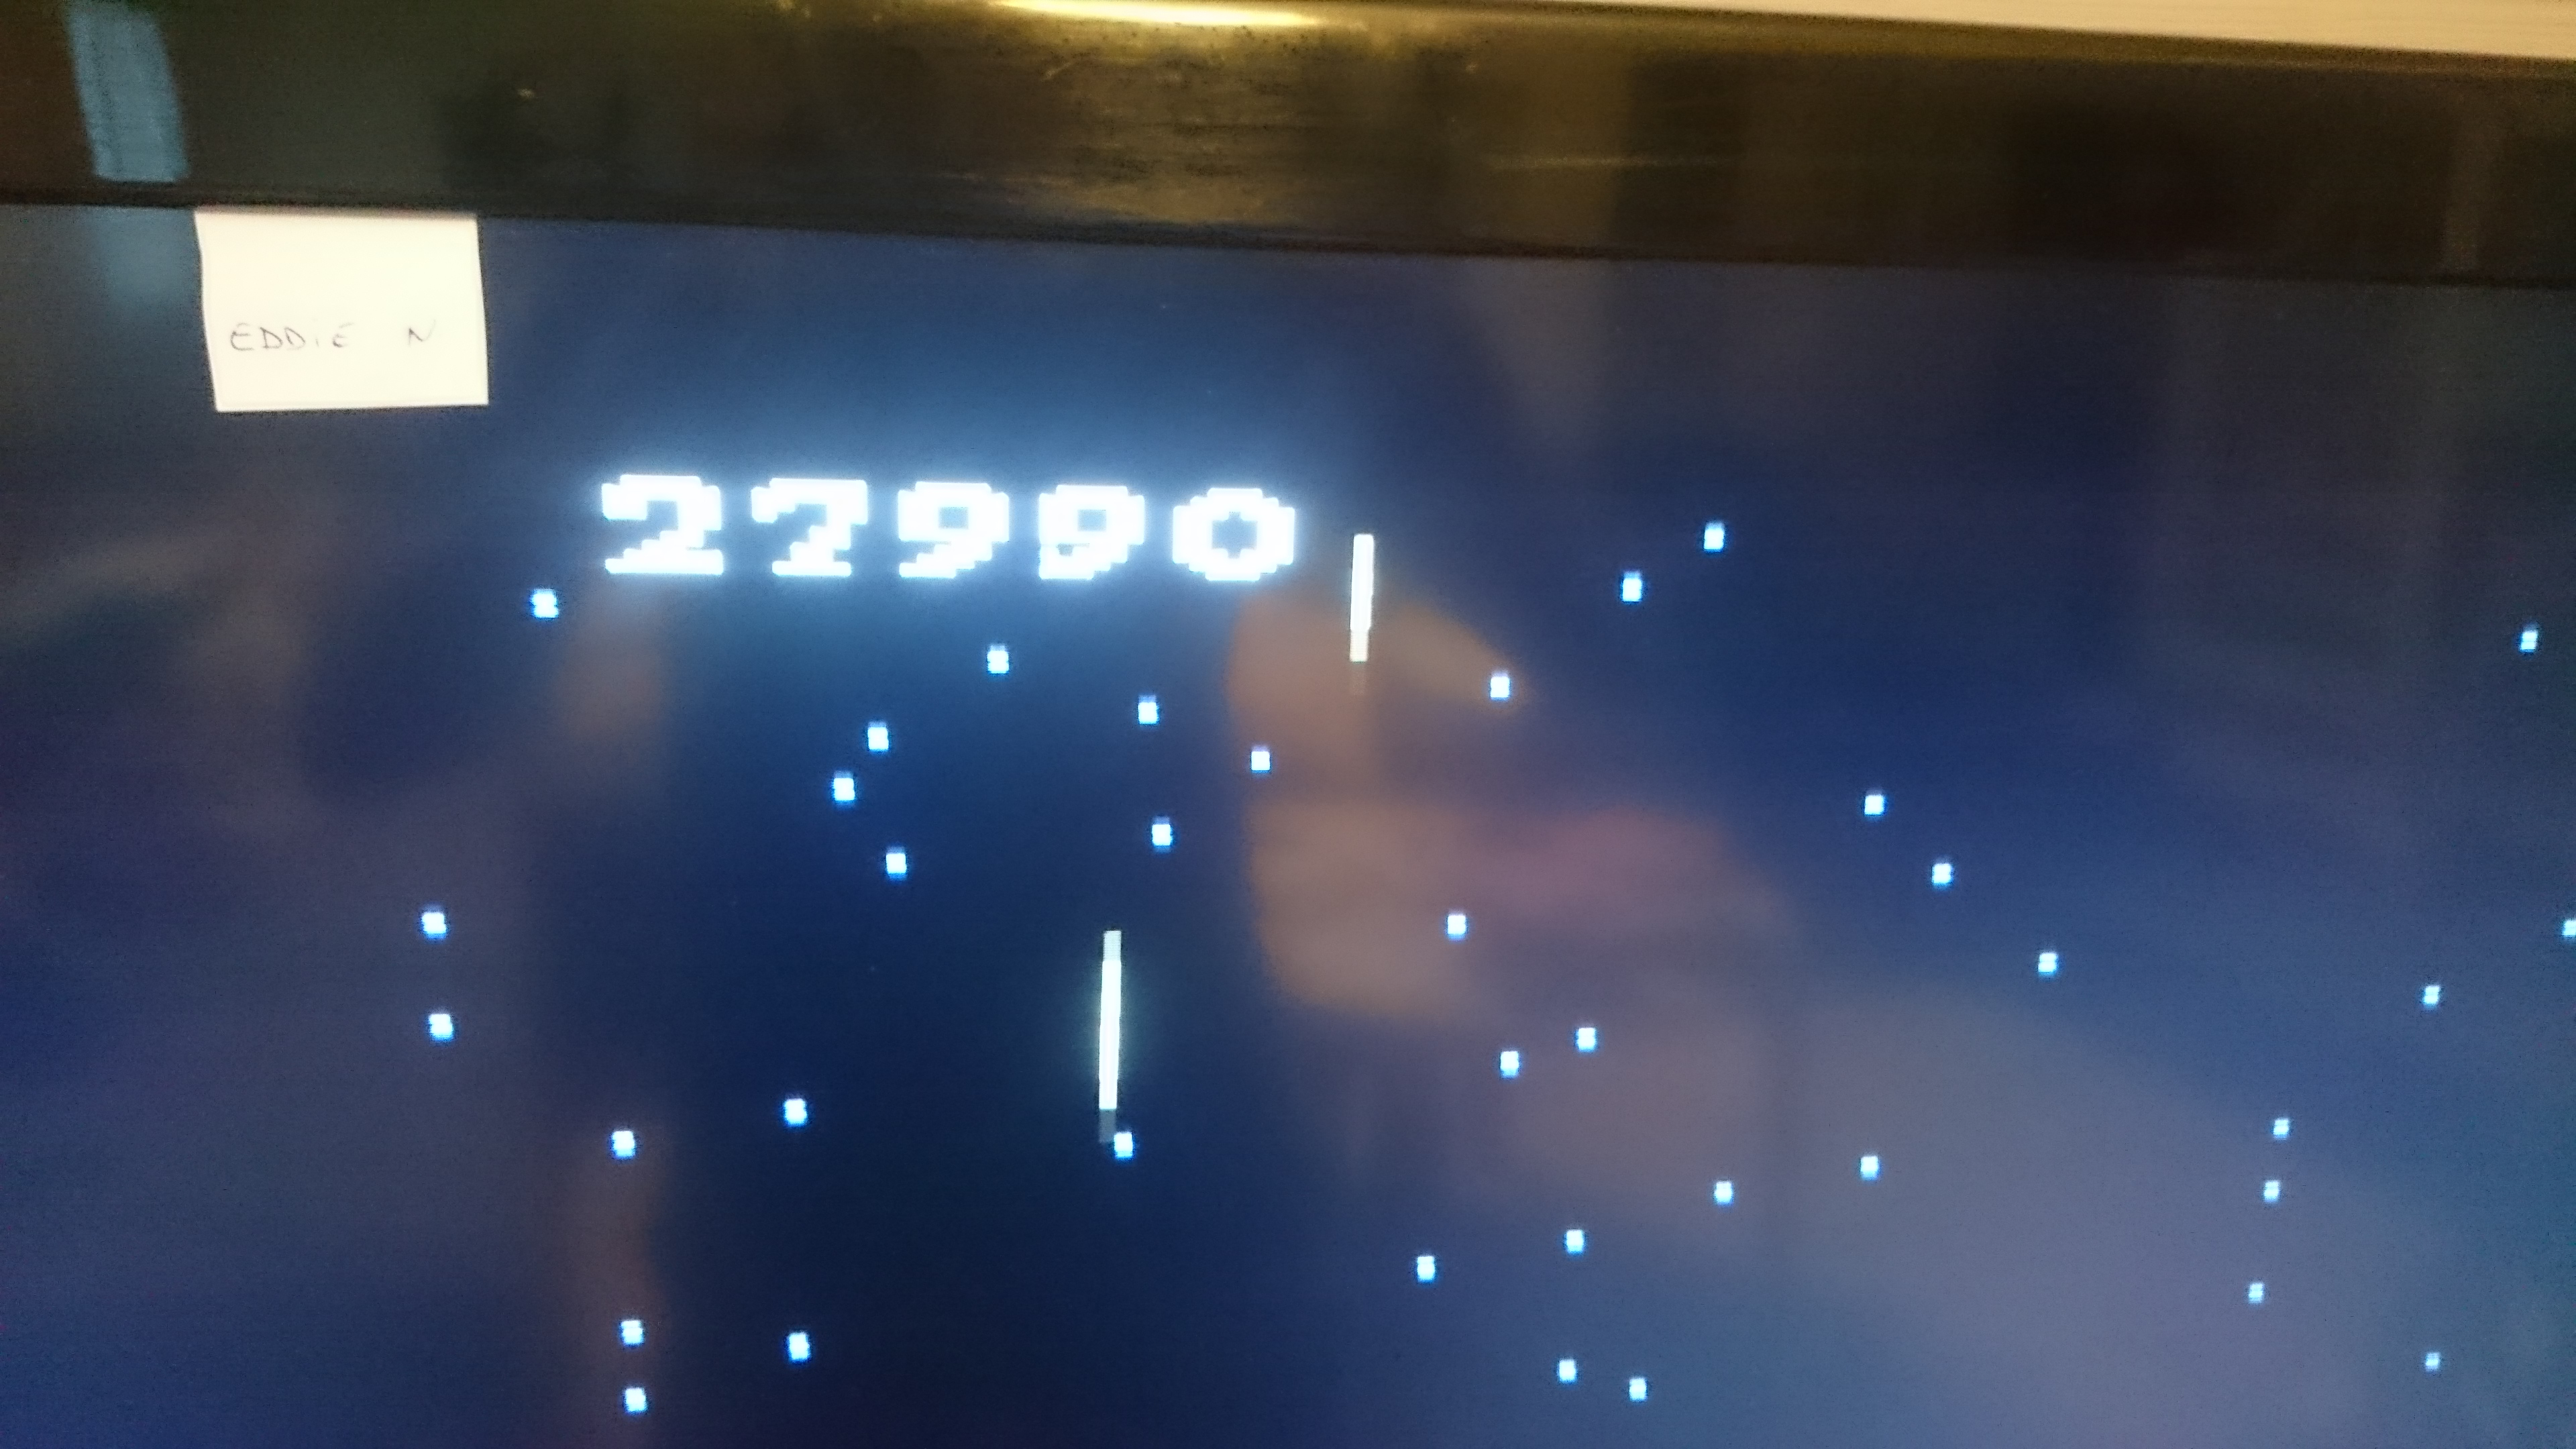 EddieNiceguy: Galaga: Advanced (Atari 7800 Emulated) 27,990 points on 2017-11-17 01:42:02